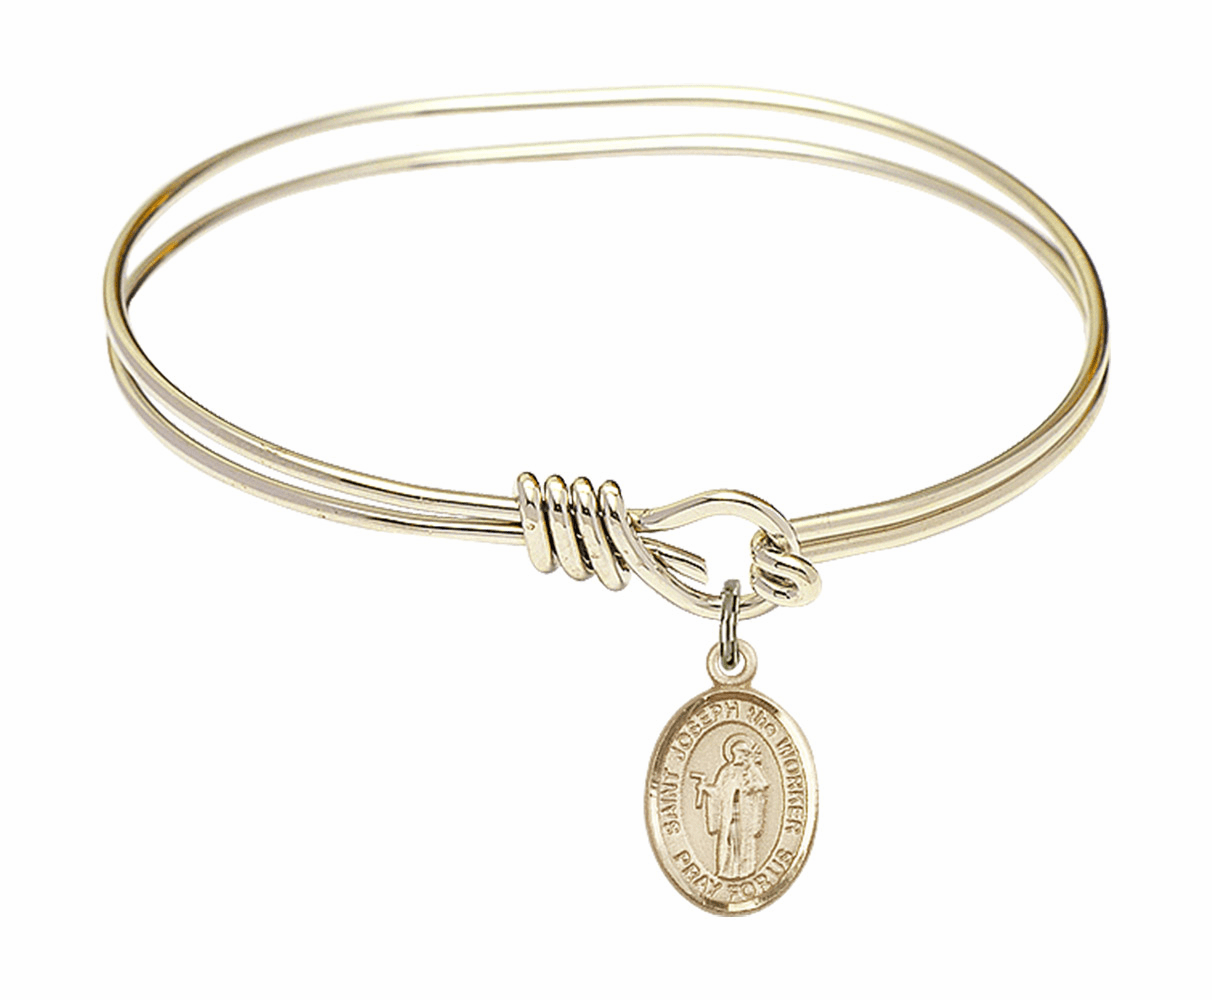 Round Loop St Joseph the Worker Bangle 14kt Gold-filled Charm Bracelet by Bliss